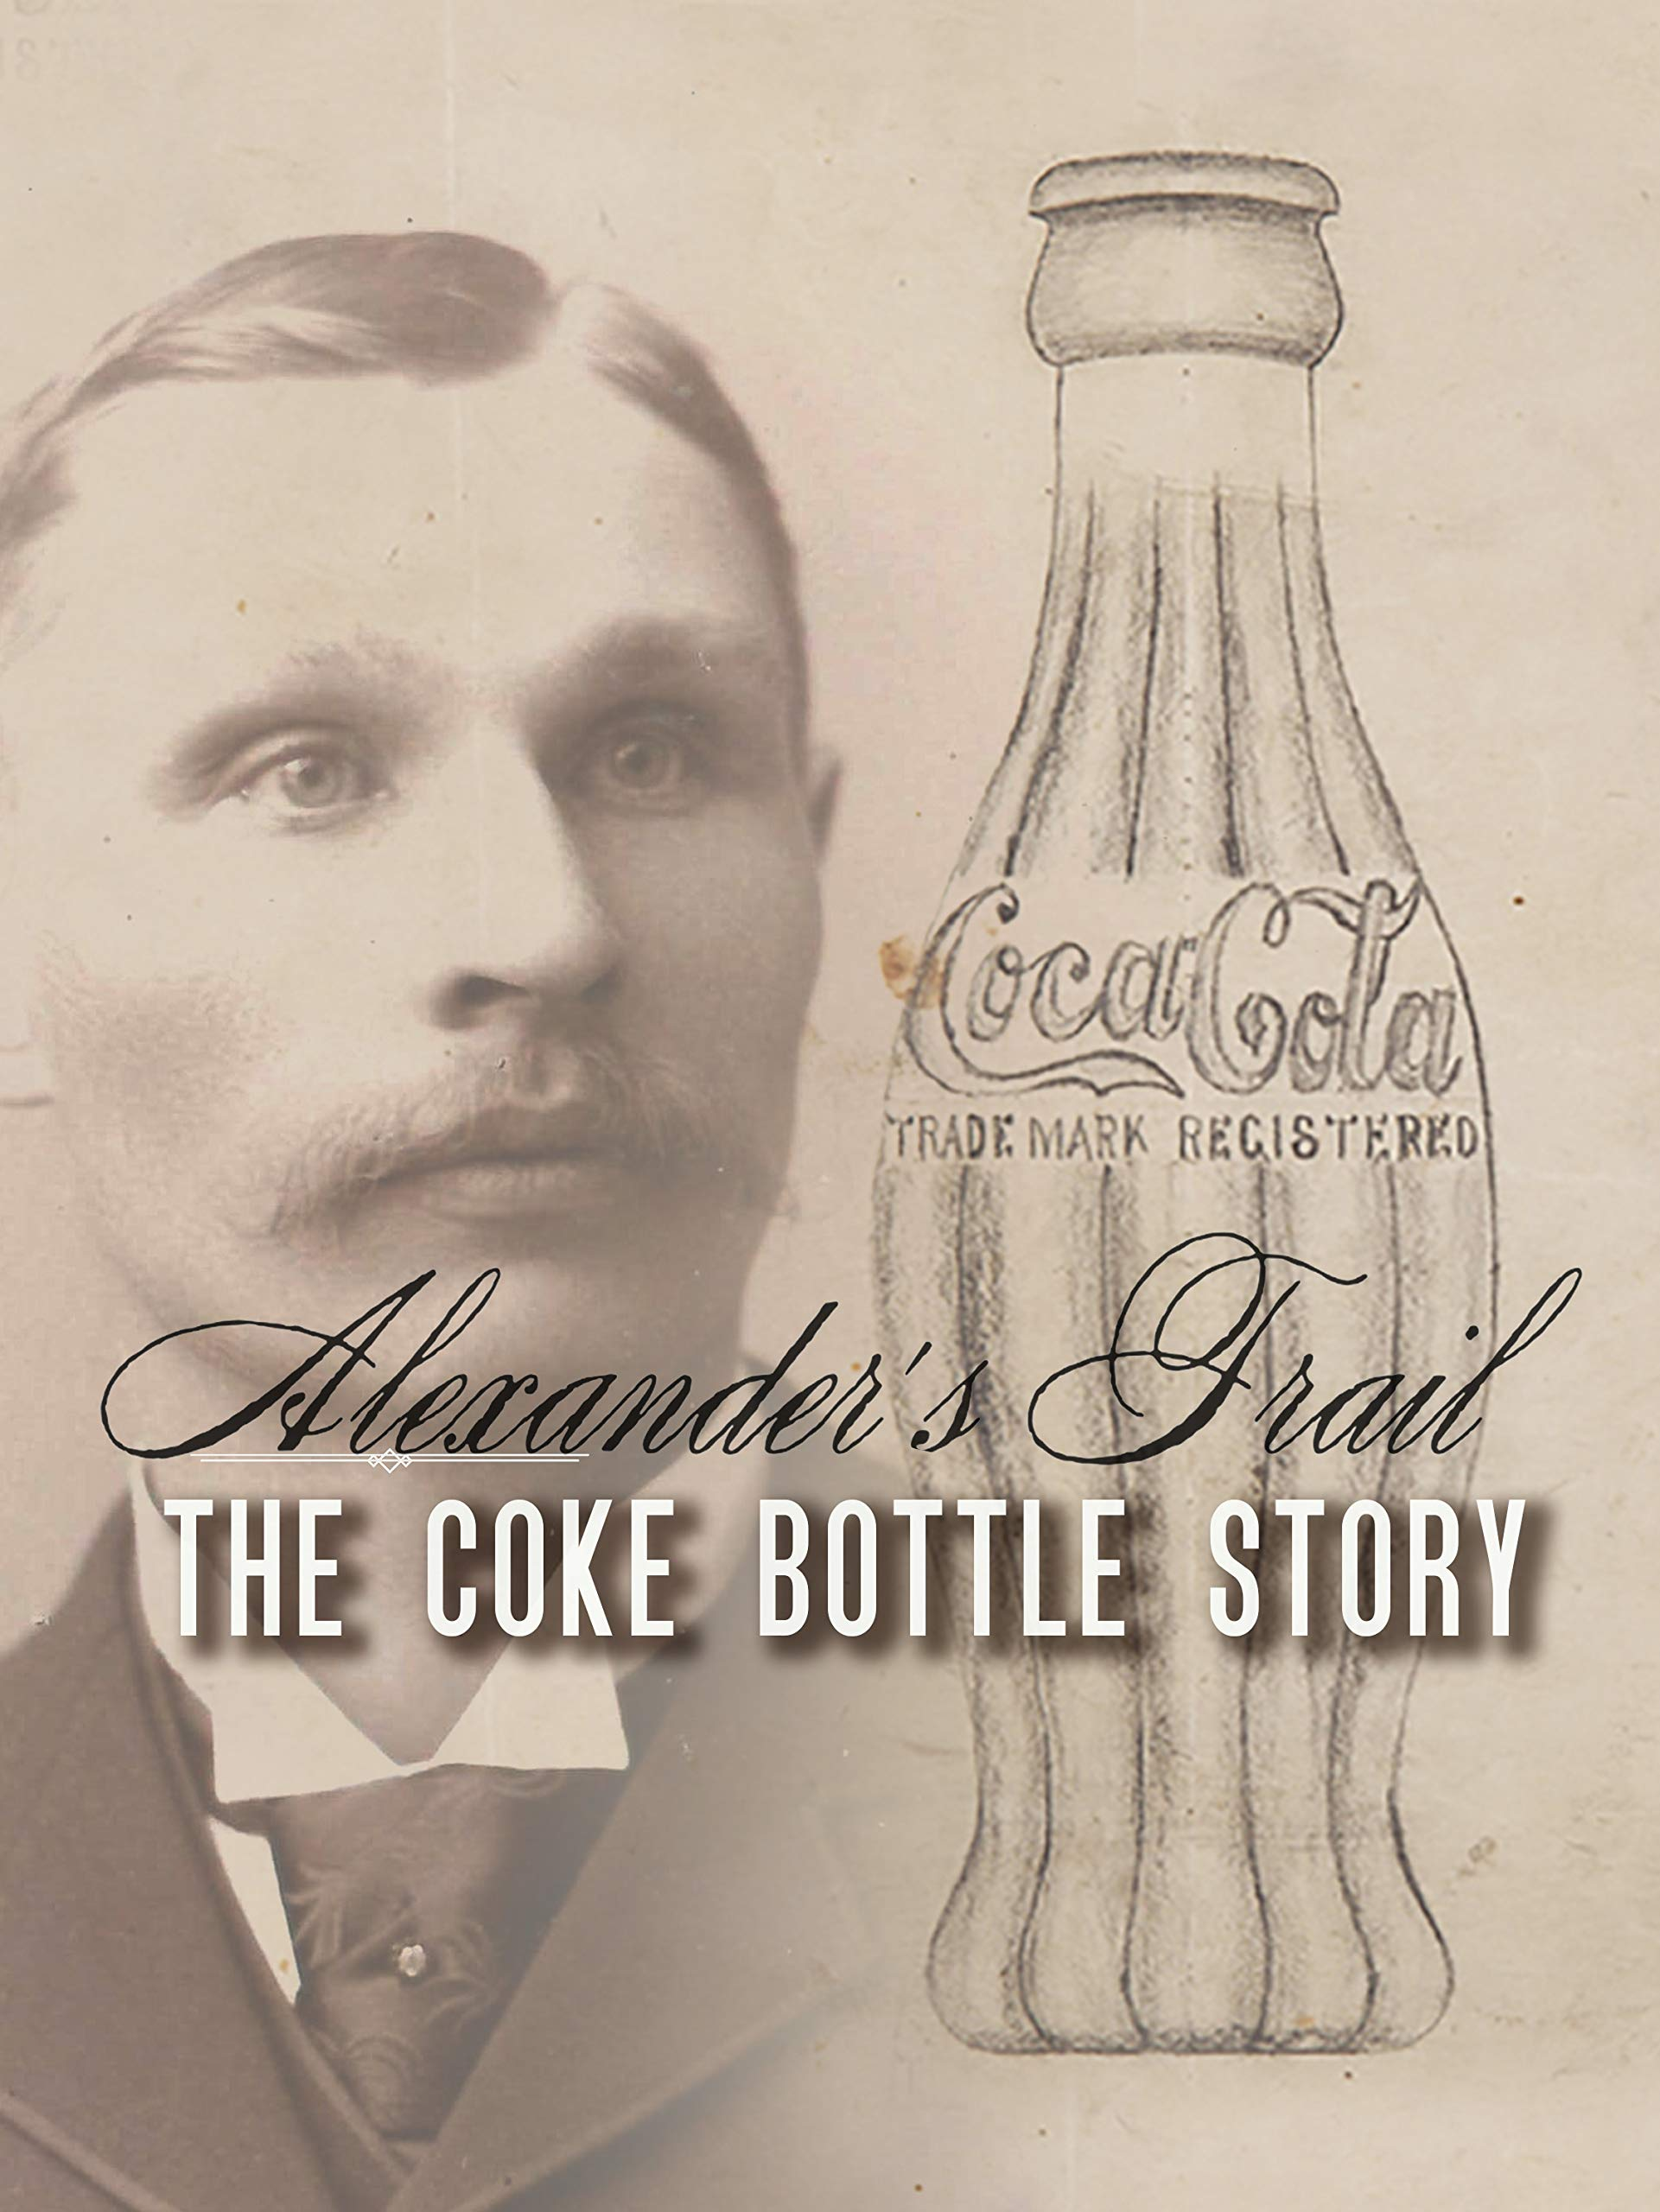 Alexander's trail - The Coke bottle story